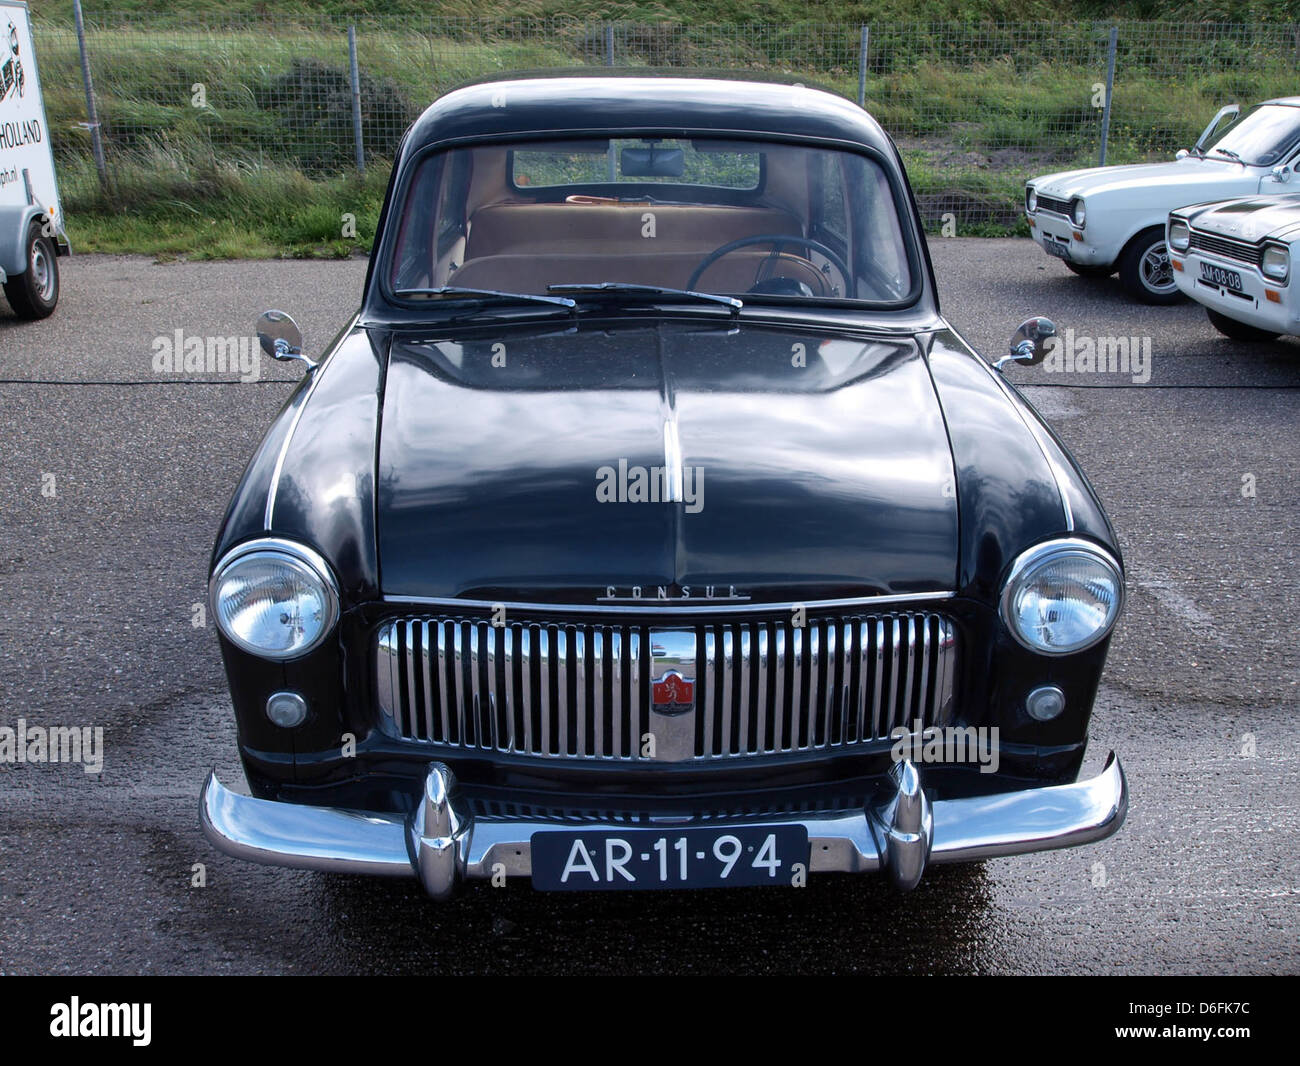 Ford Consul Vehicle Car Stock Photos 1954 Cars For Sale Pic1 Image